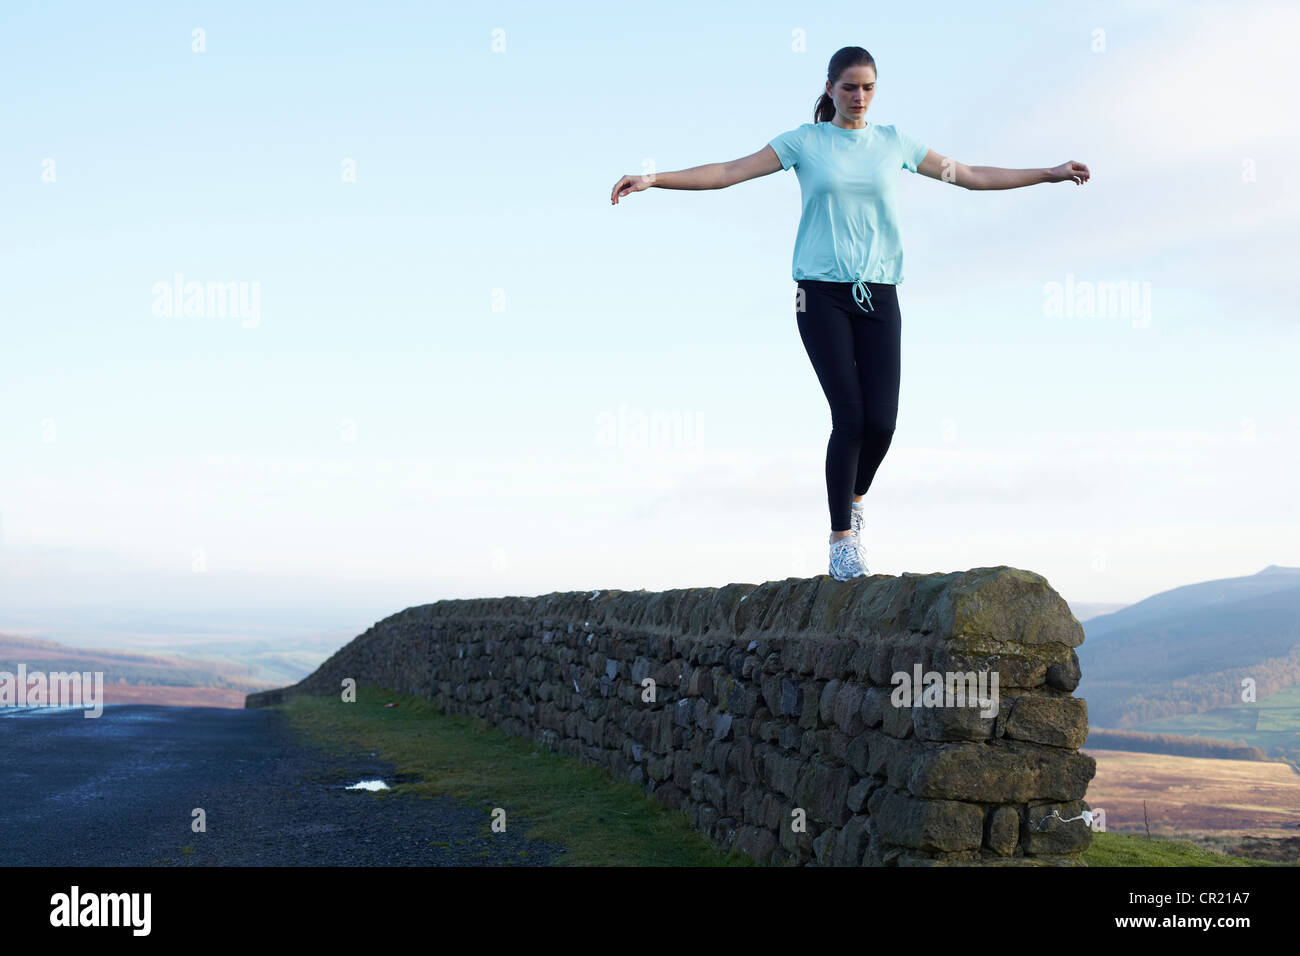 Runner balancing on rock wall - Stock Image